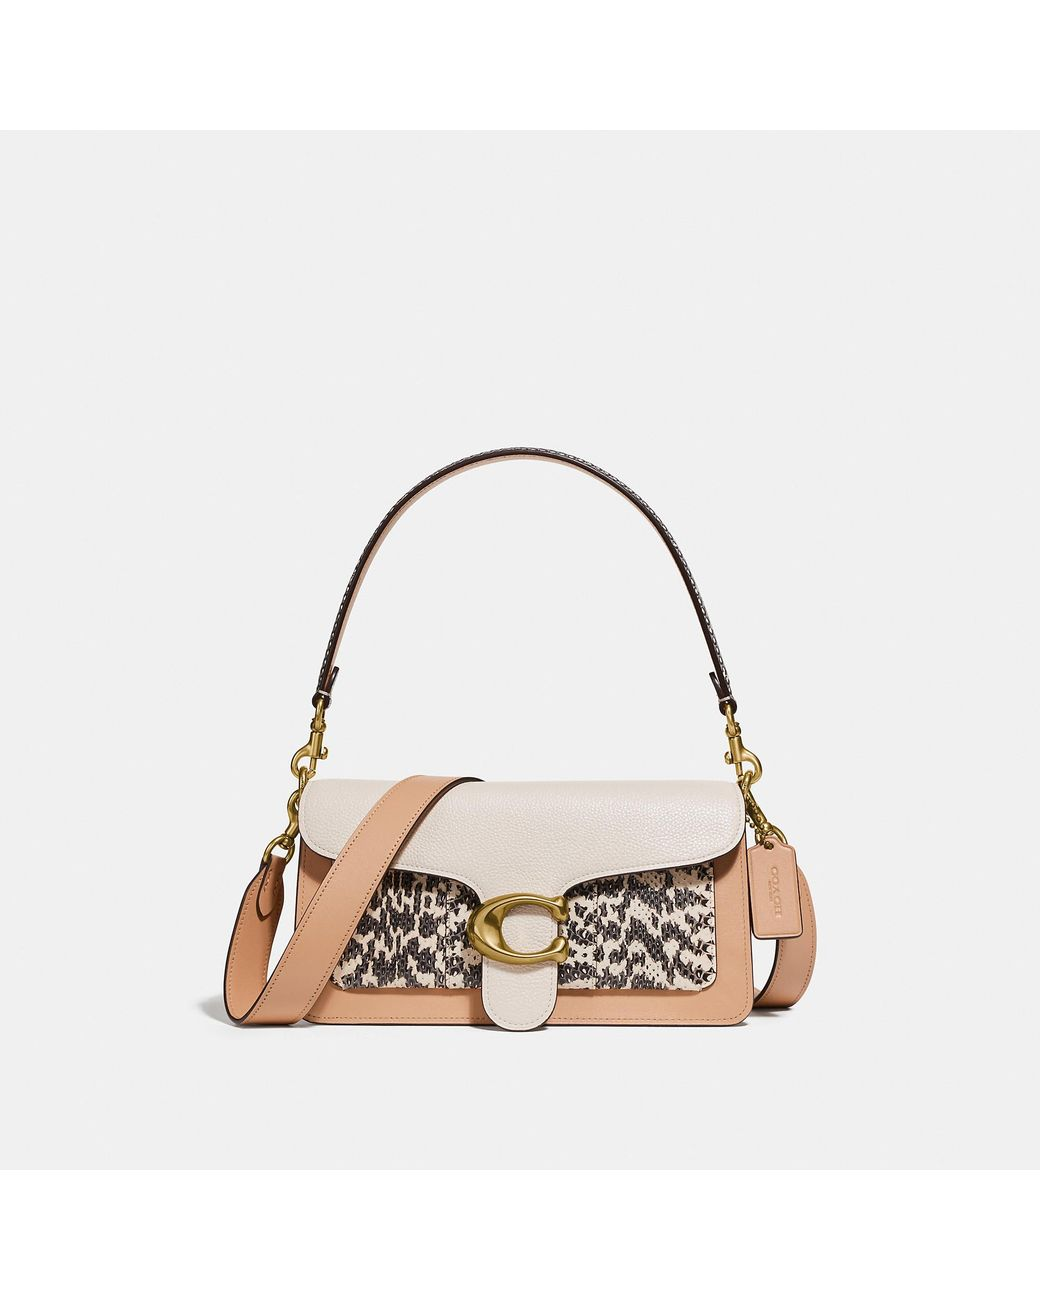 91797d7eeae COACH Tabby Shoulder Bag 26 In Colorblock With Snakeskin Detail - Lyst